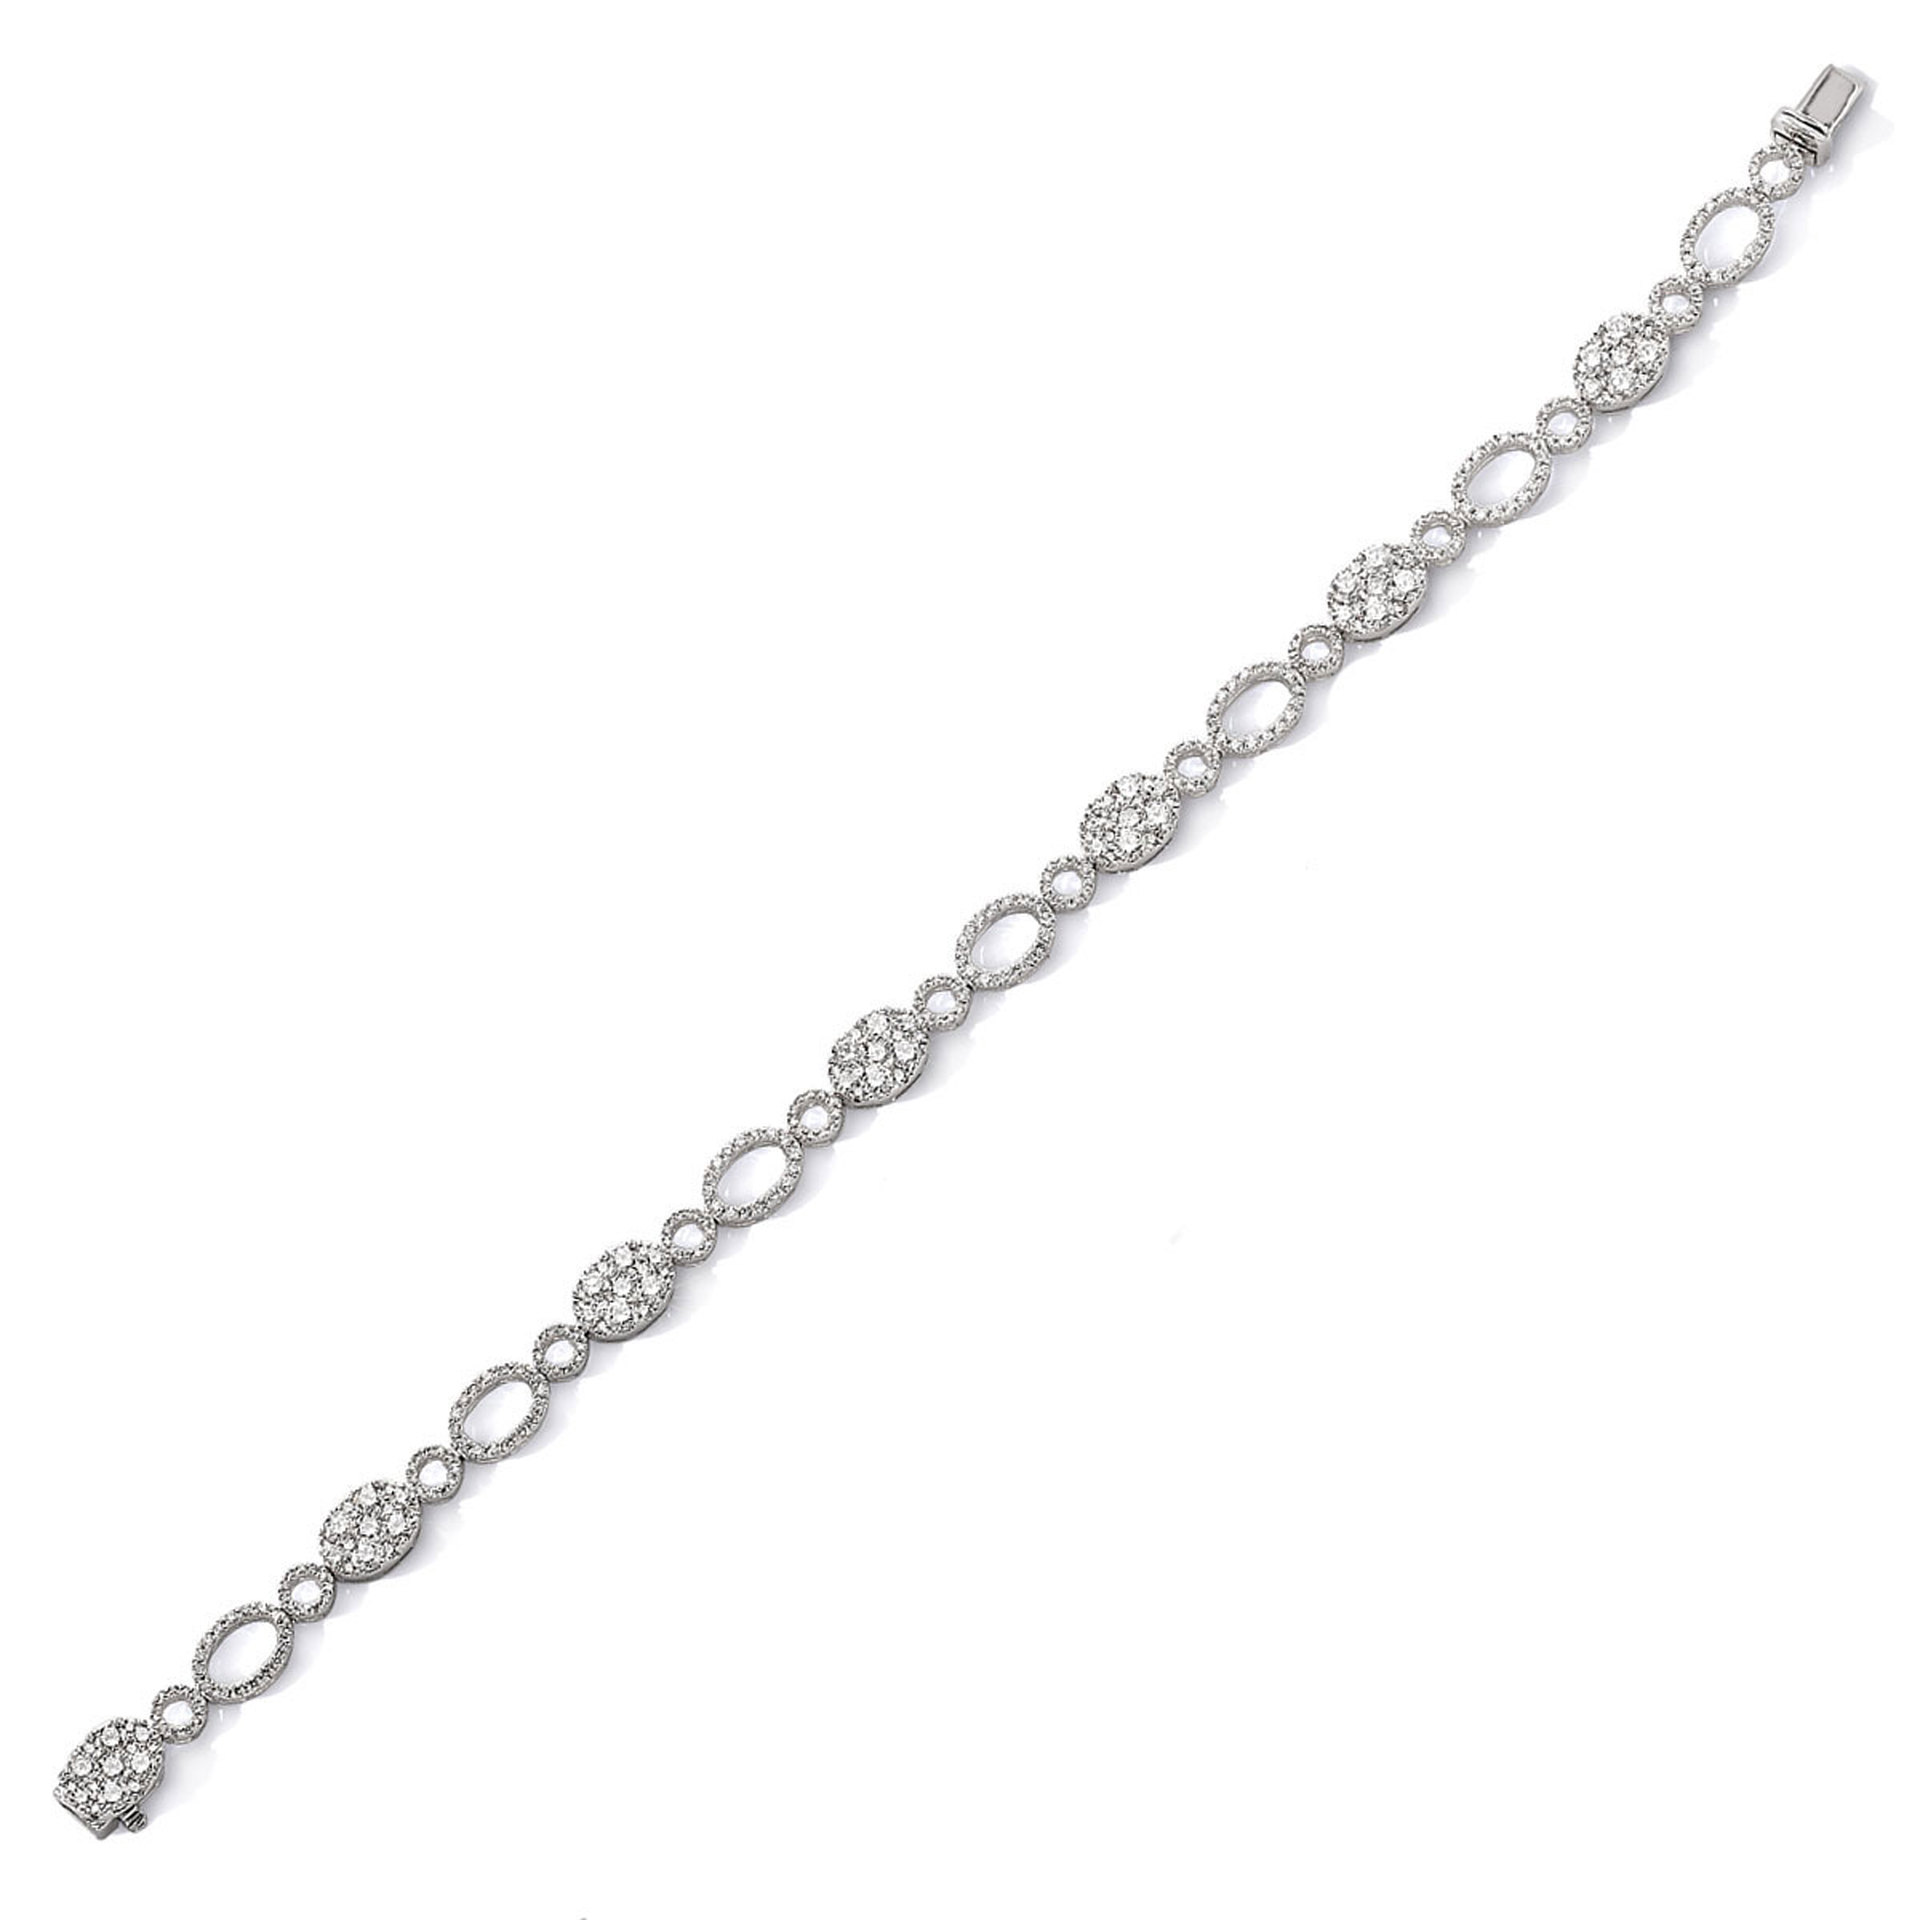 18ct white gold and diamond cluster bracelet